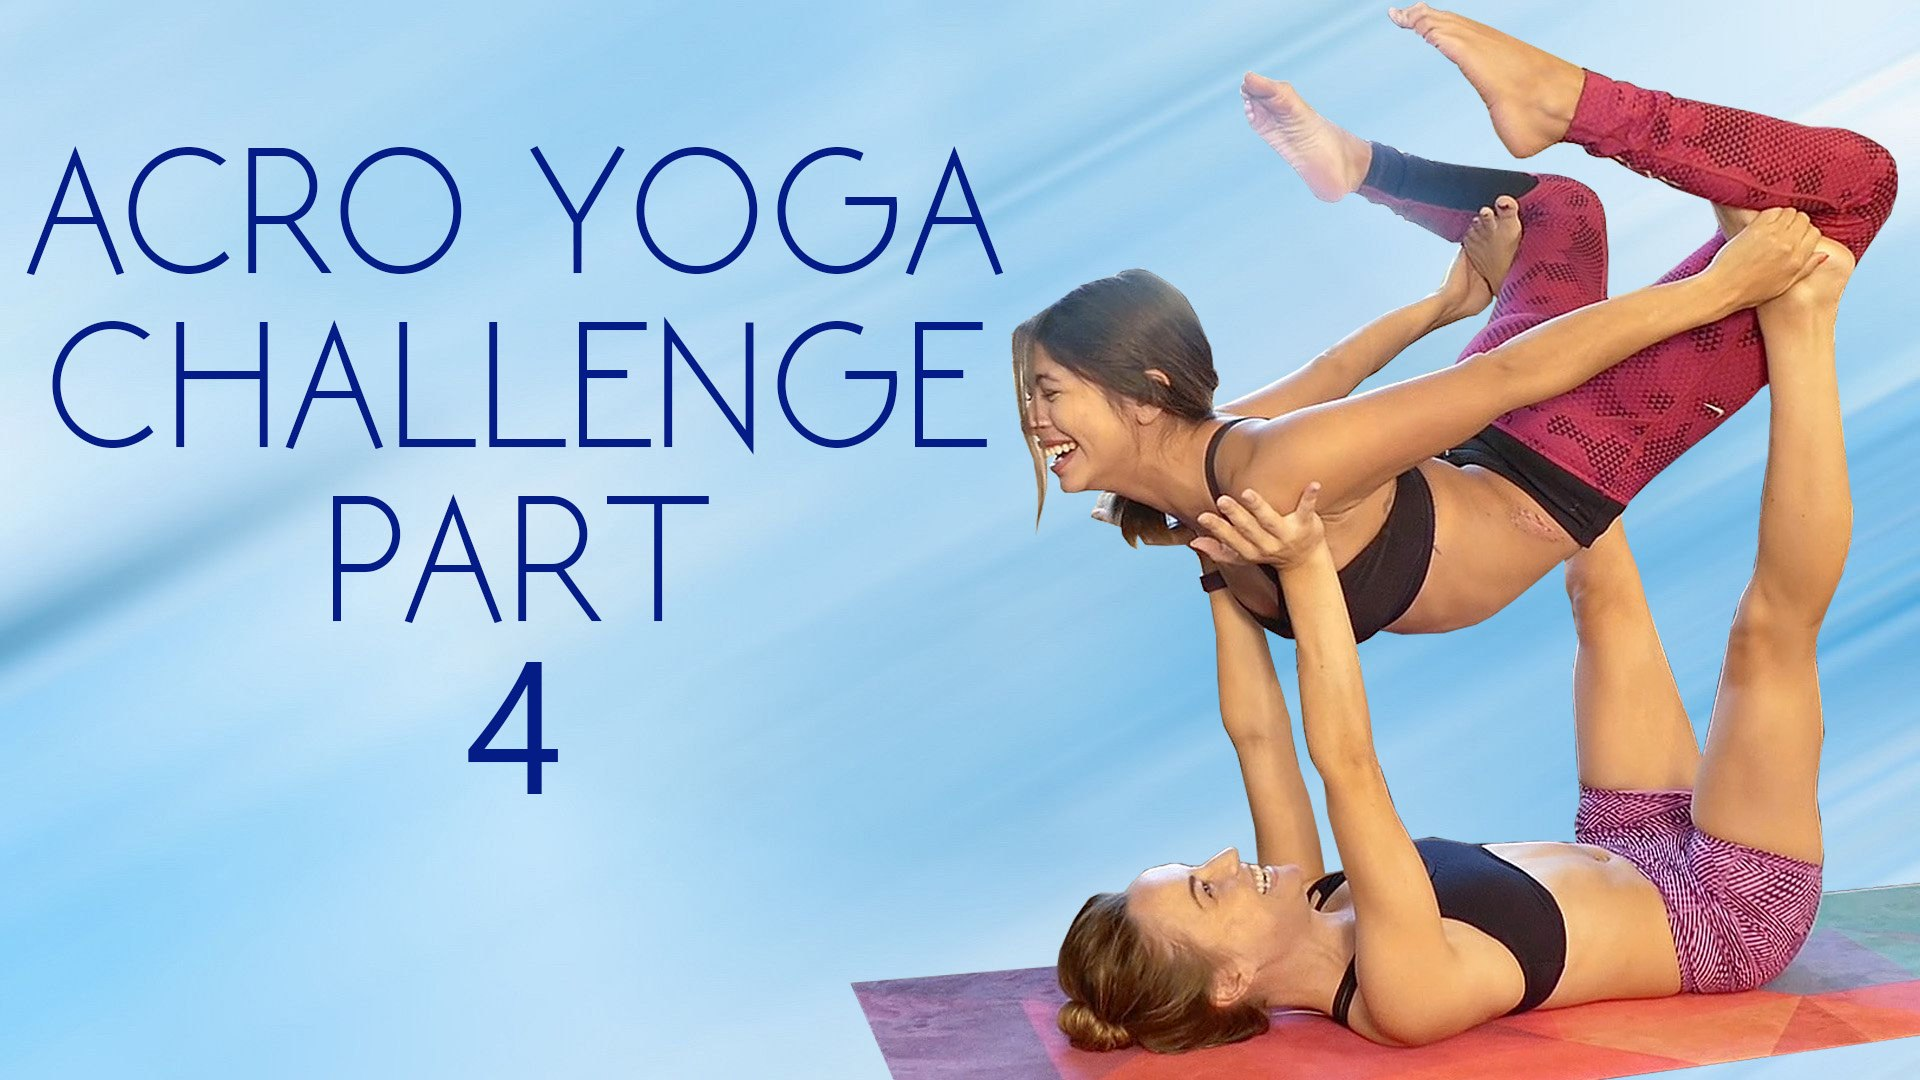 Learn A Yoga Challenge Workout To Help You Master It 20 Minute Partner Flexibility Acro Tutorial Video Dailymotion